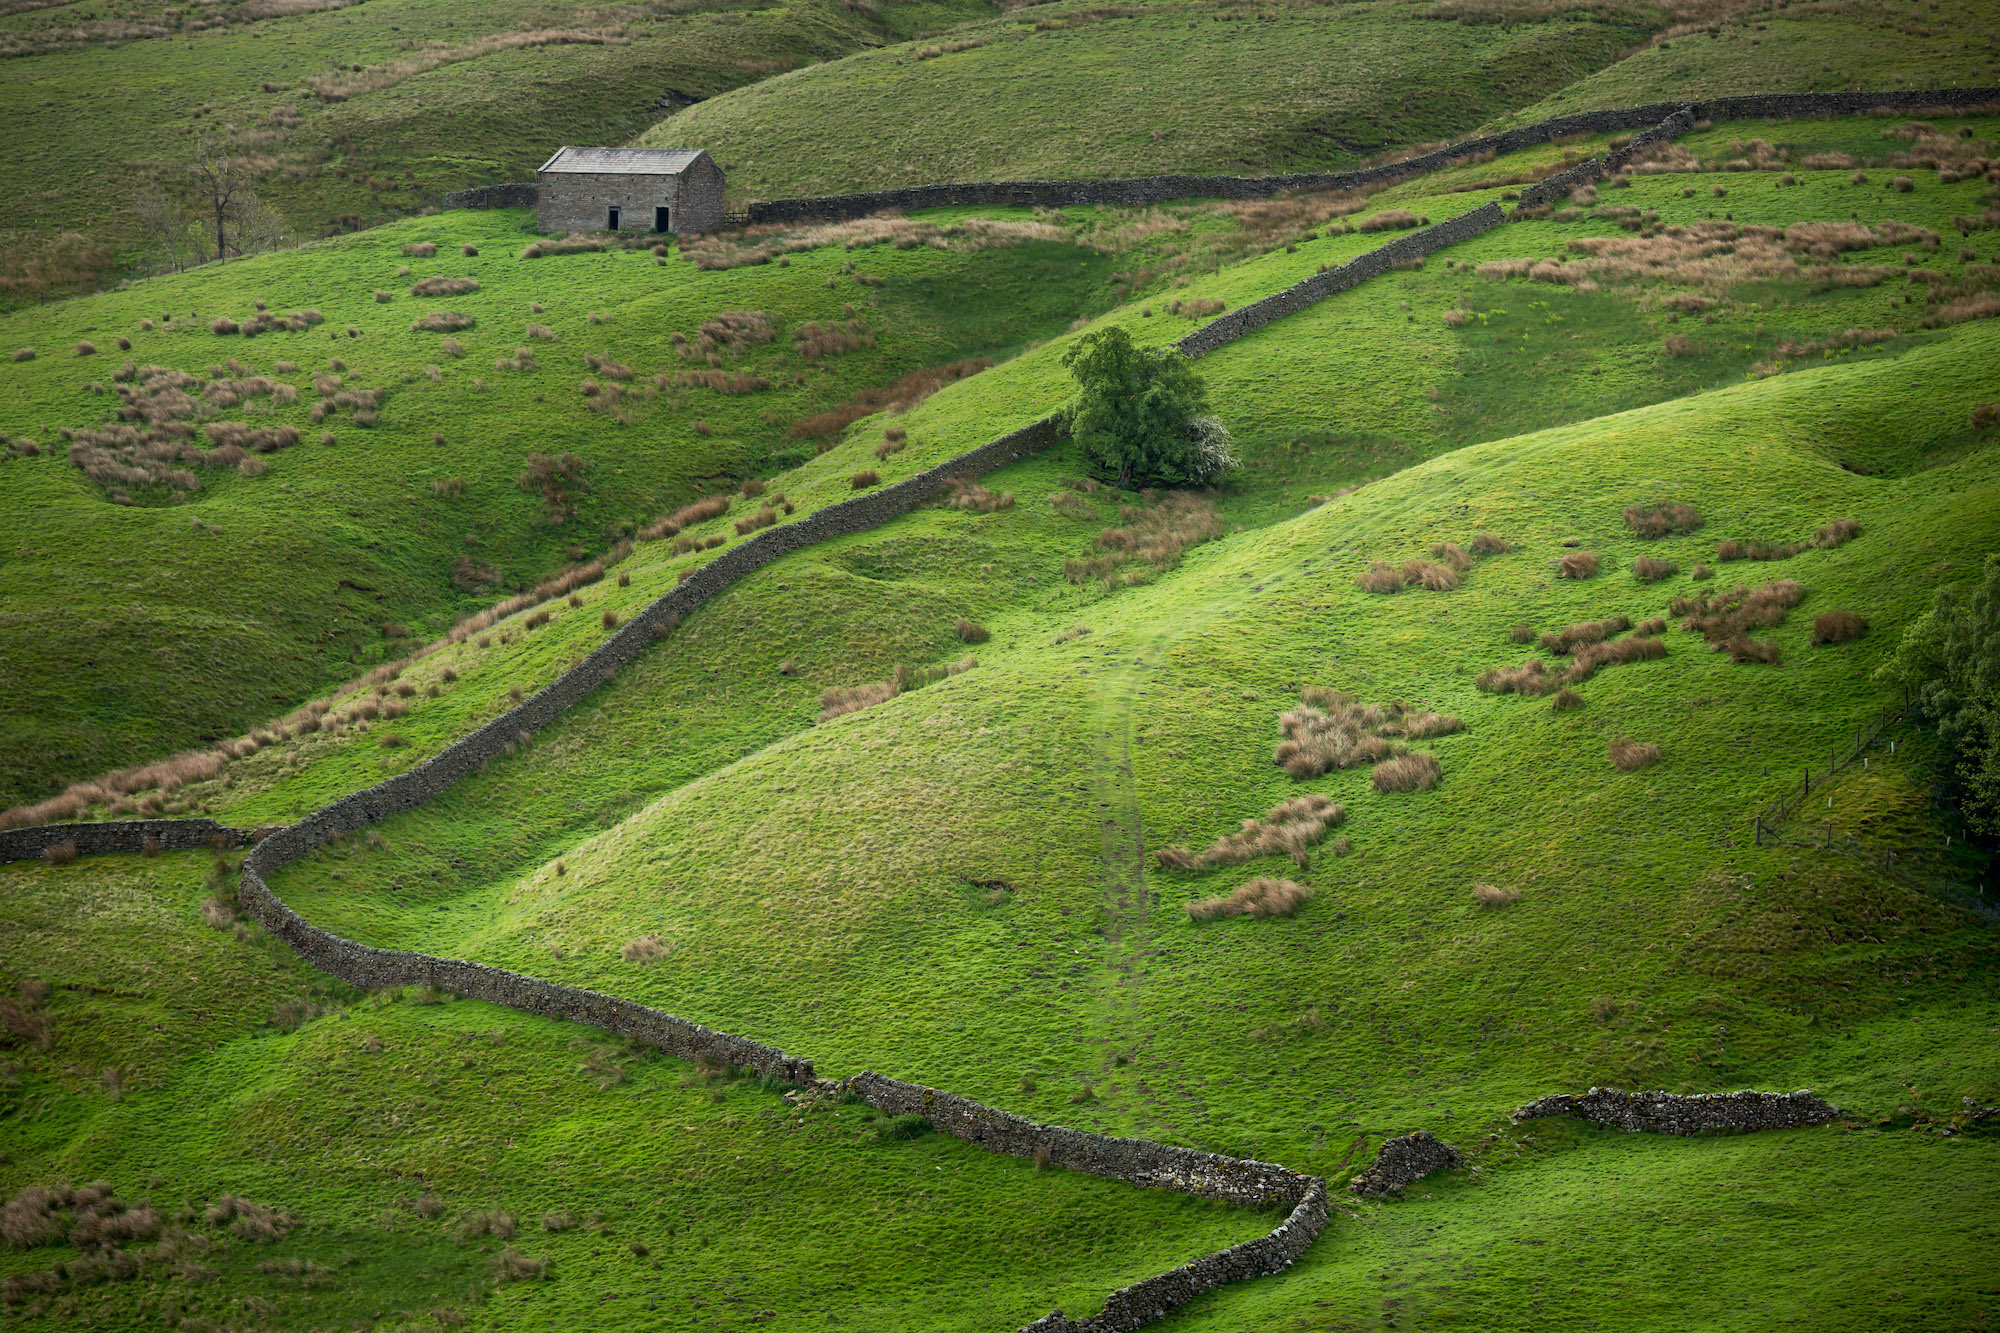 Drystone walls in Horsehouse in the Yorkshire Dales